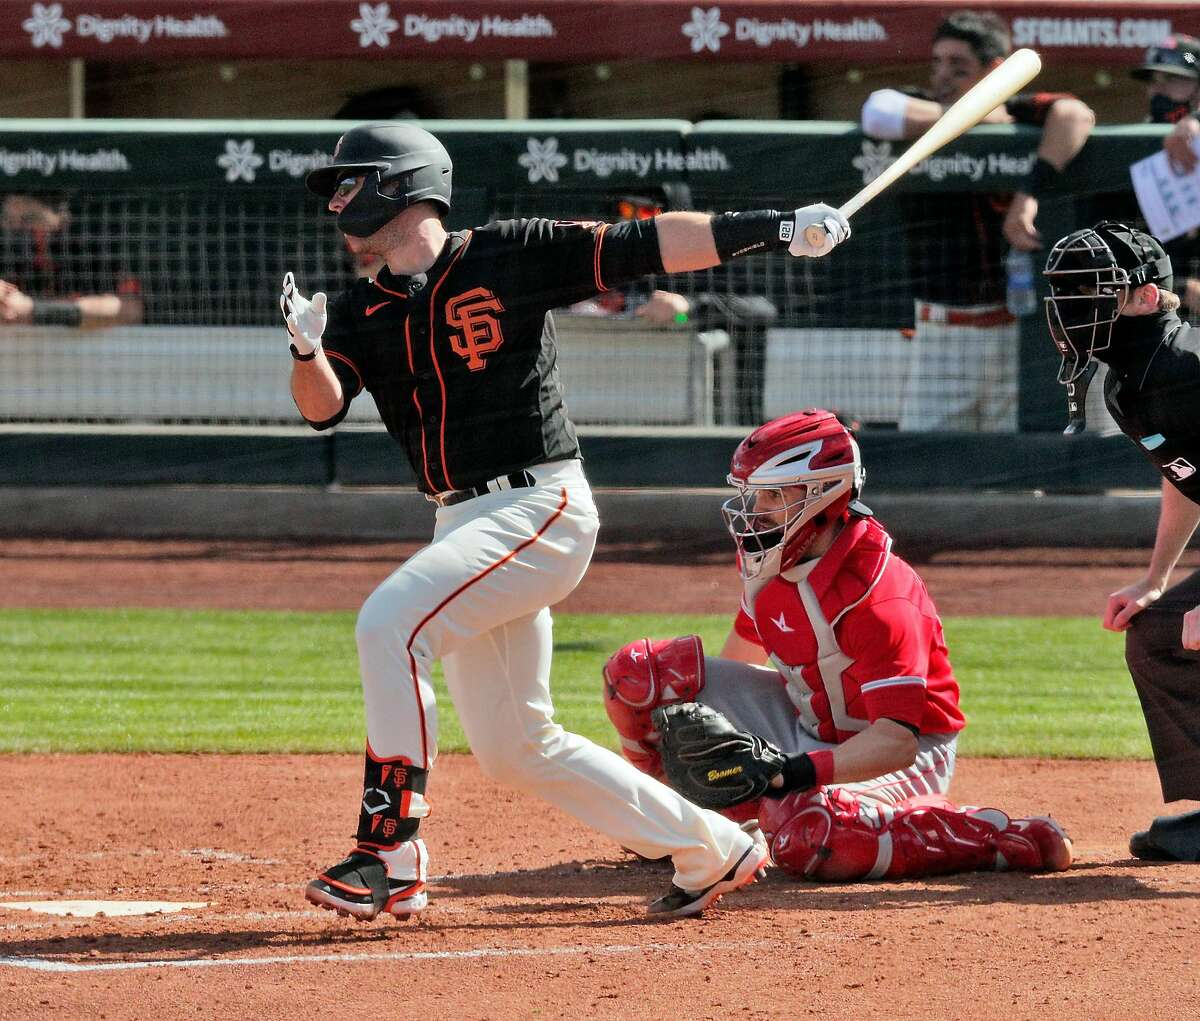 Buster Posey, who sat out last season, returned to the lineup and got the Giants' first hit of the spring with a single to right.